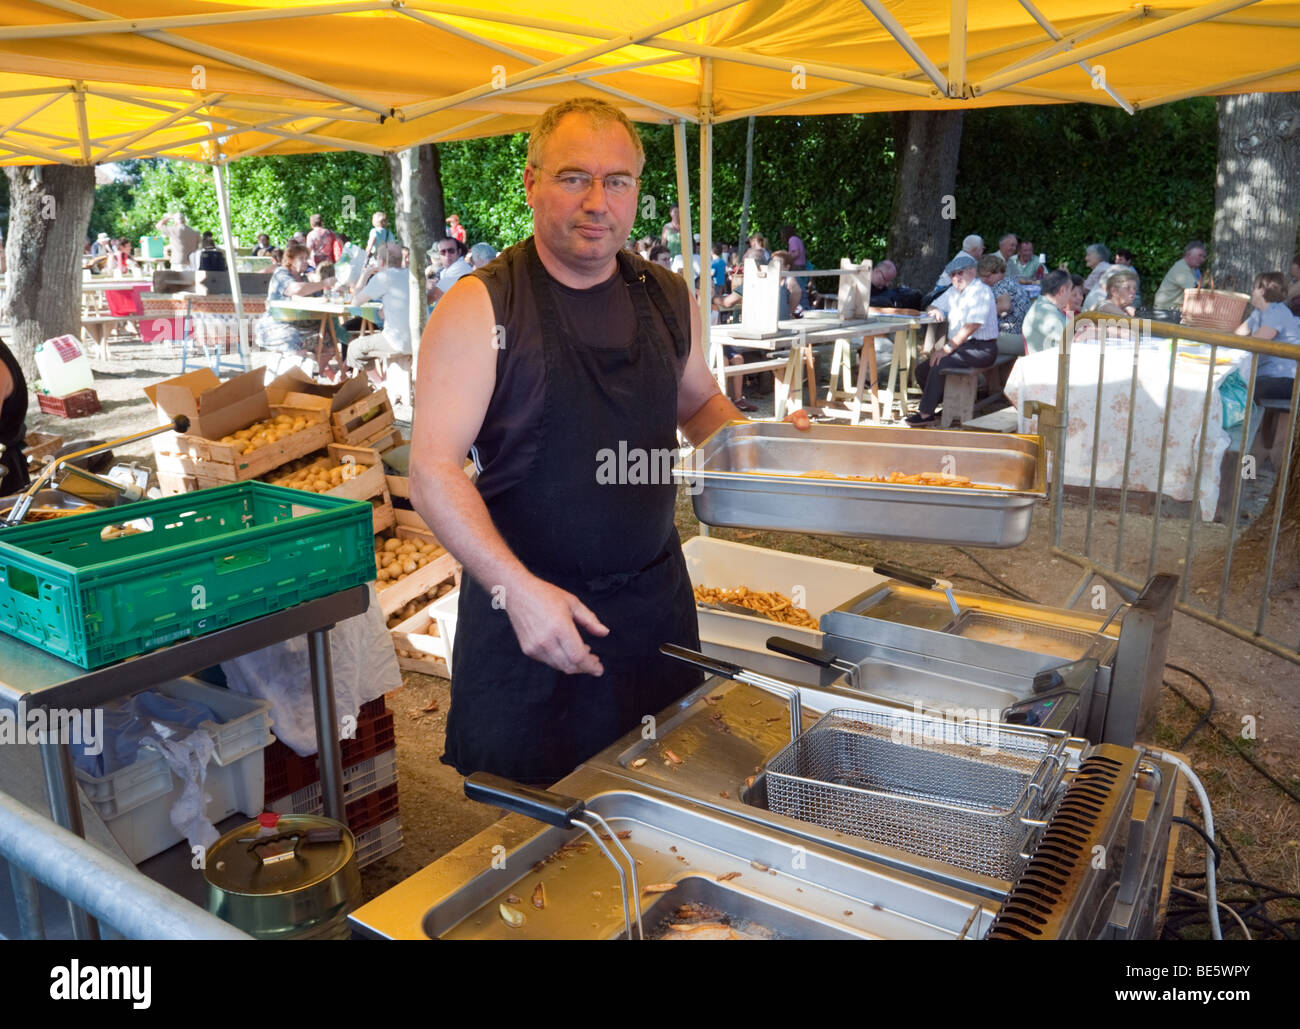 A stallkeeper making chips at a local farmers market, Laparade, Aquitaine, France - Stock Image